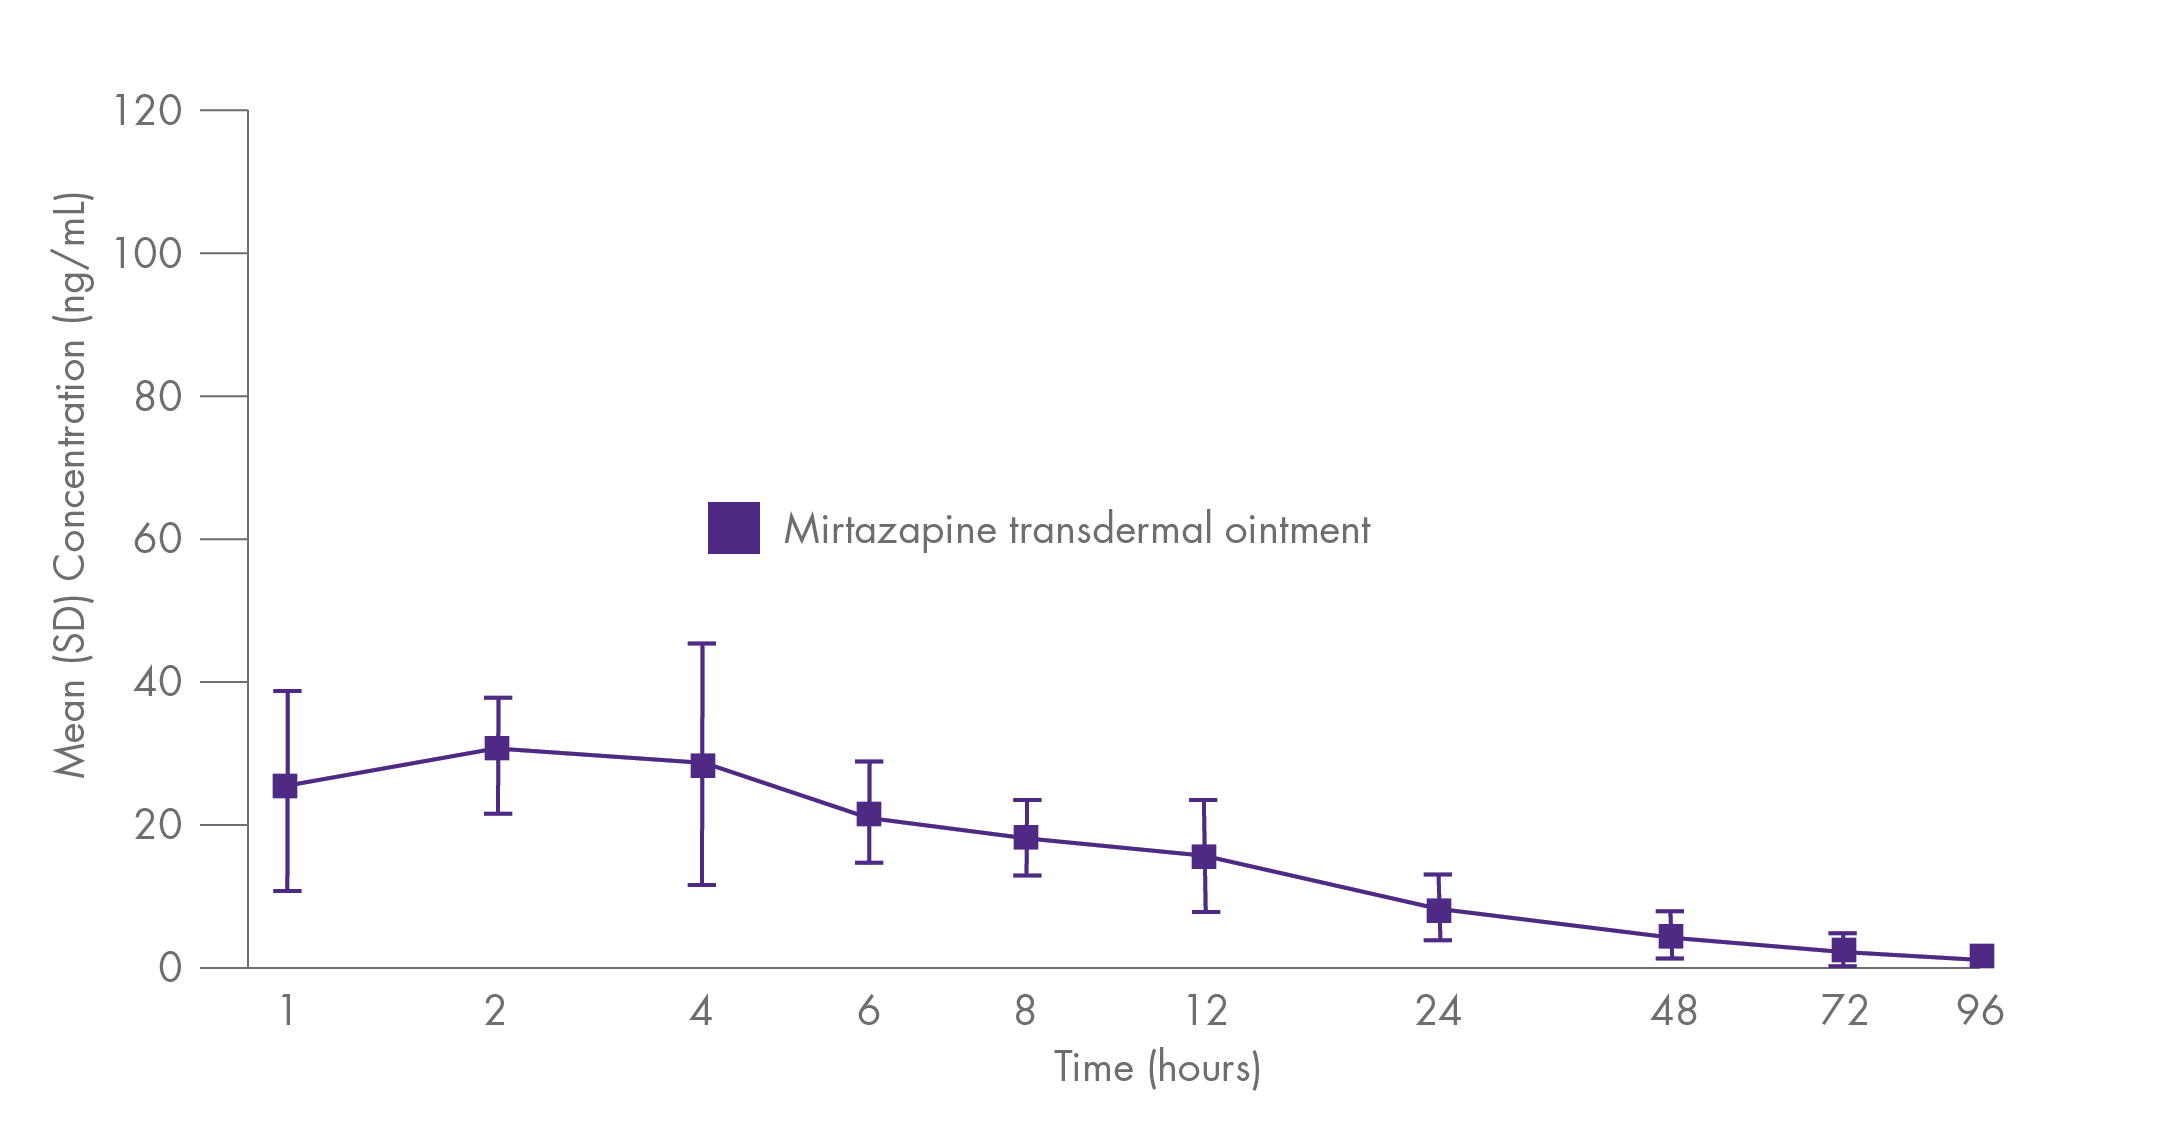 Mirtazapine concentration in cats over time.